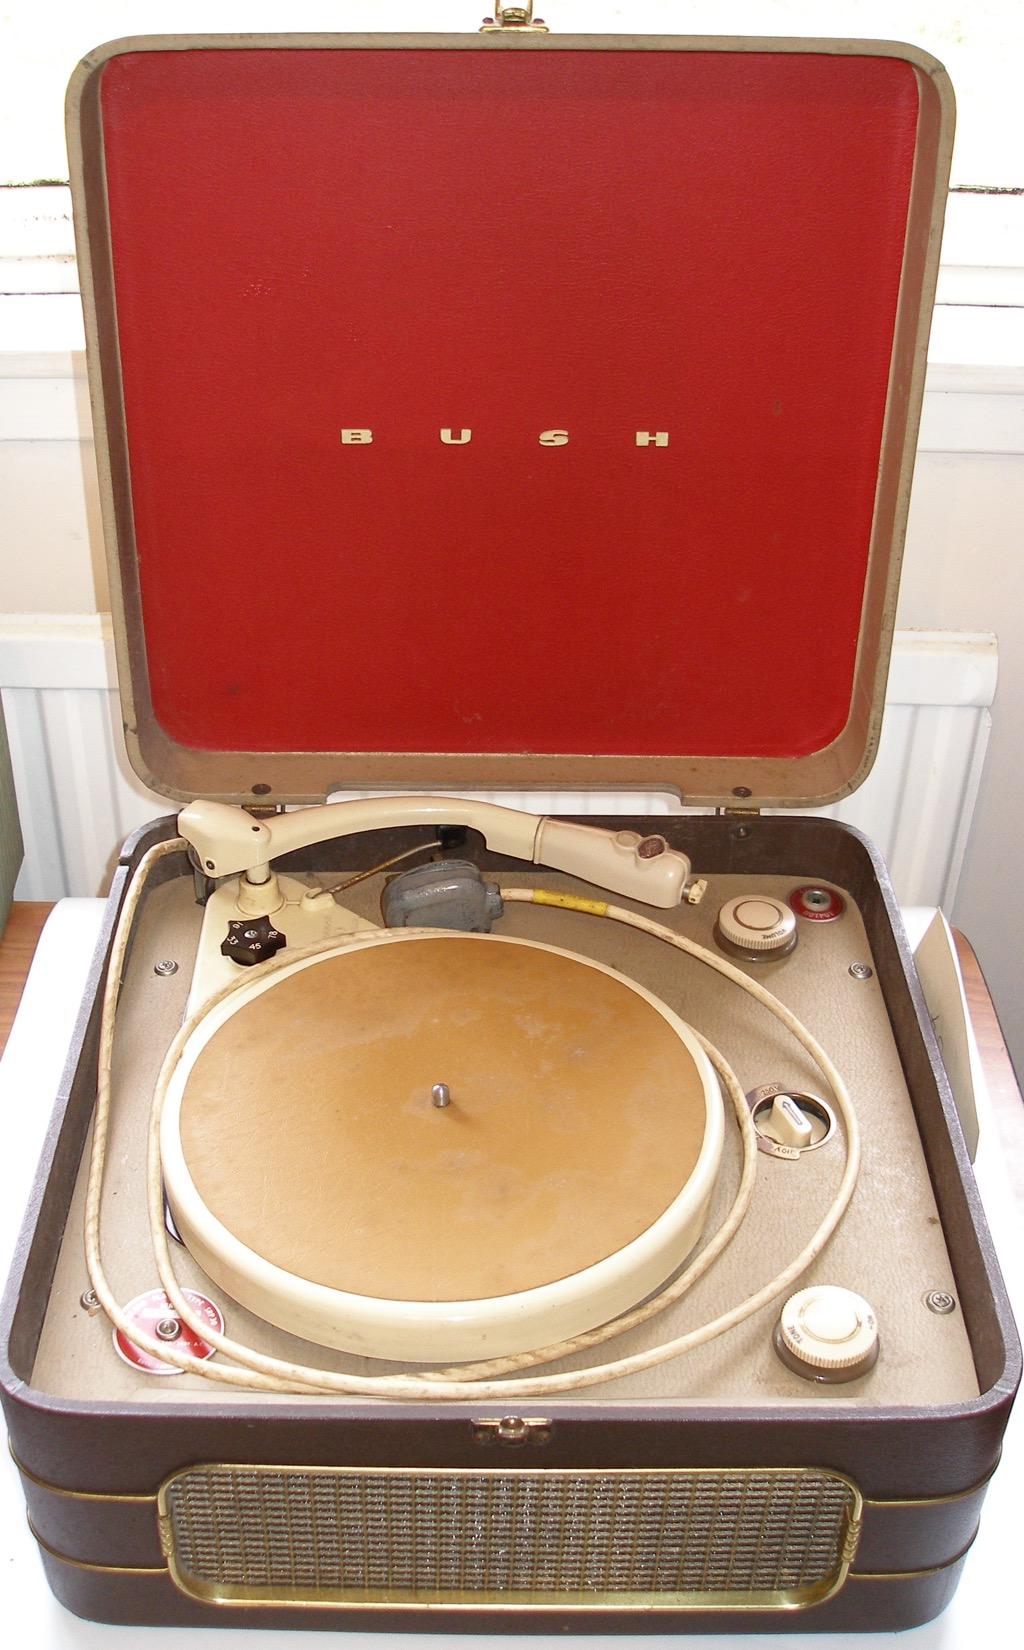 LISDD:2006.68 Bush RP20 Record Player